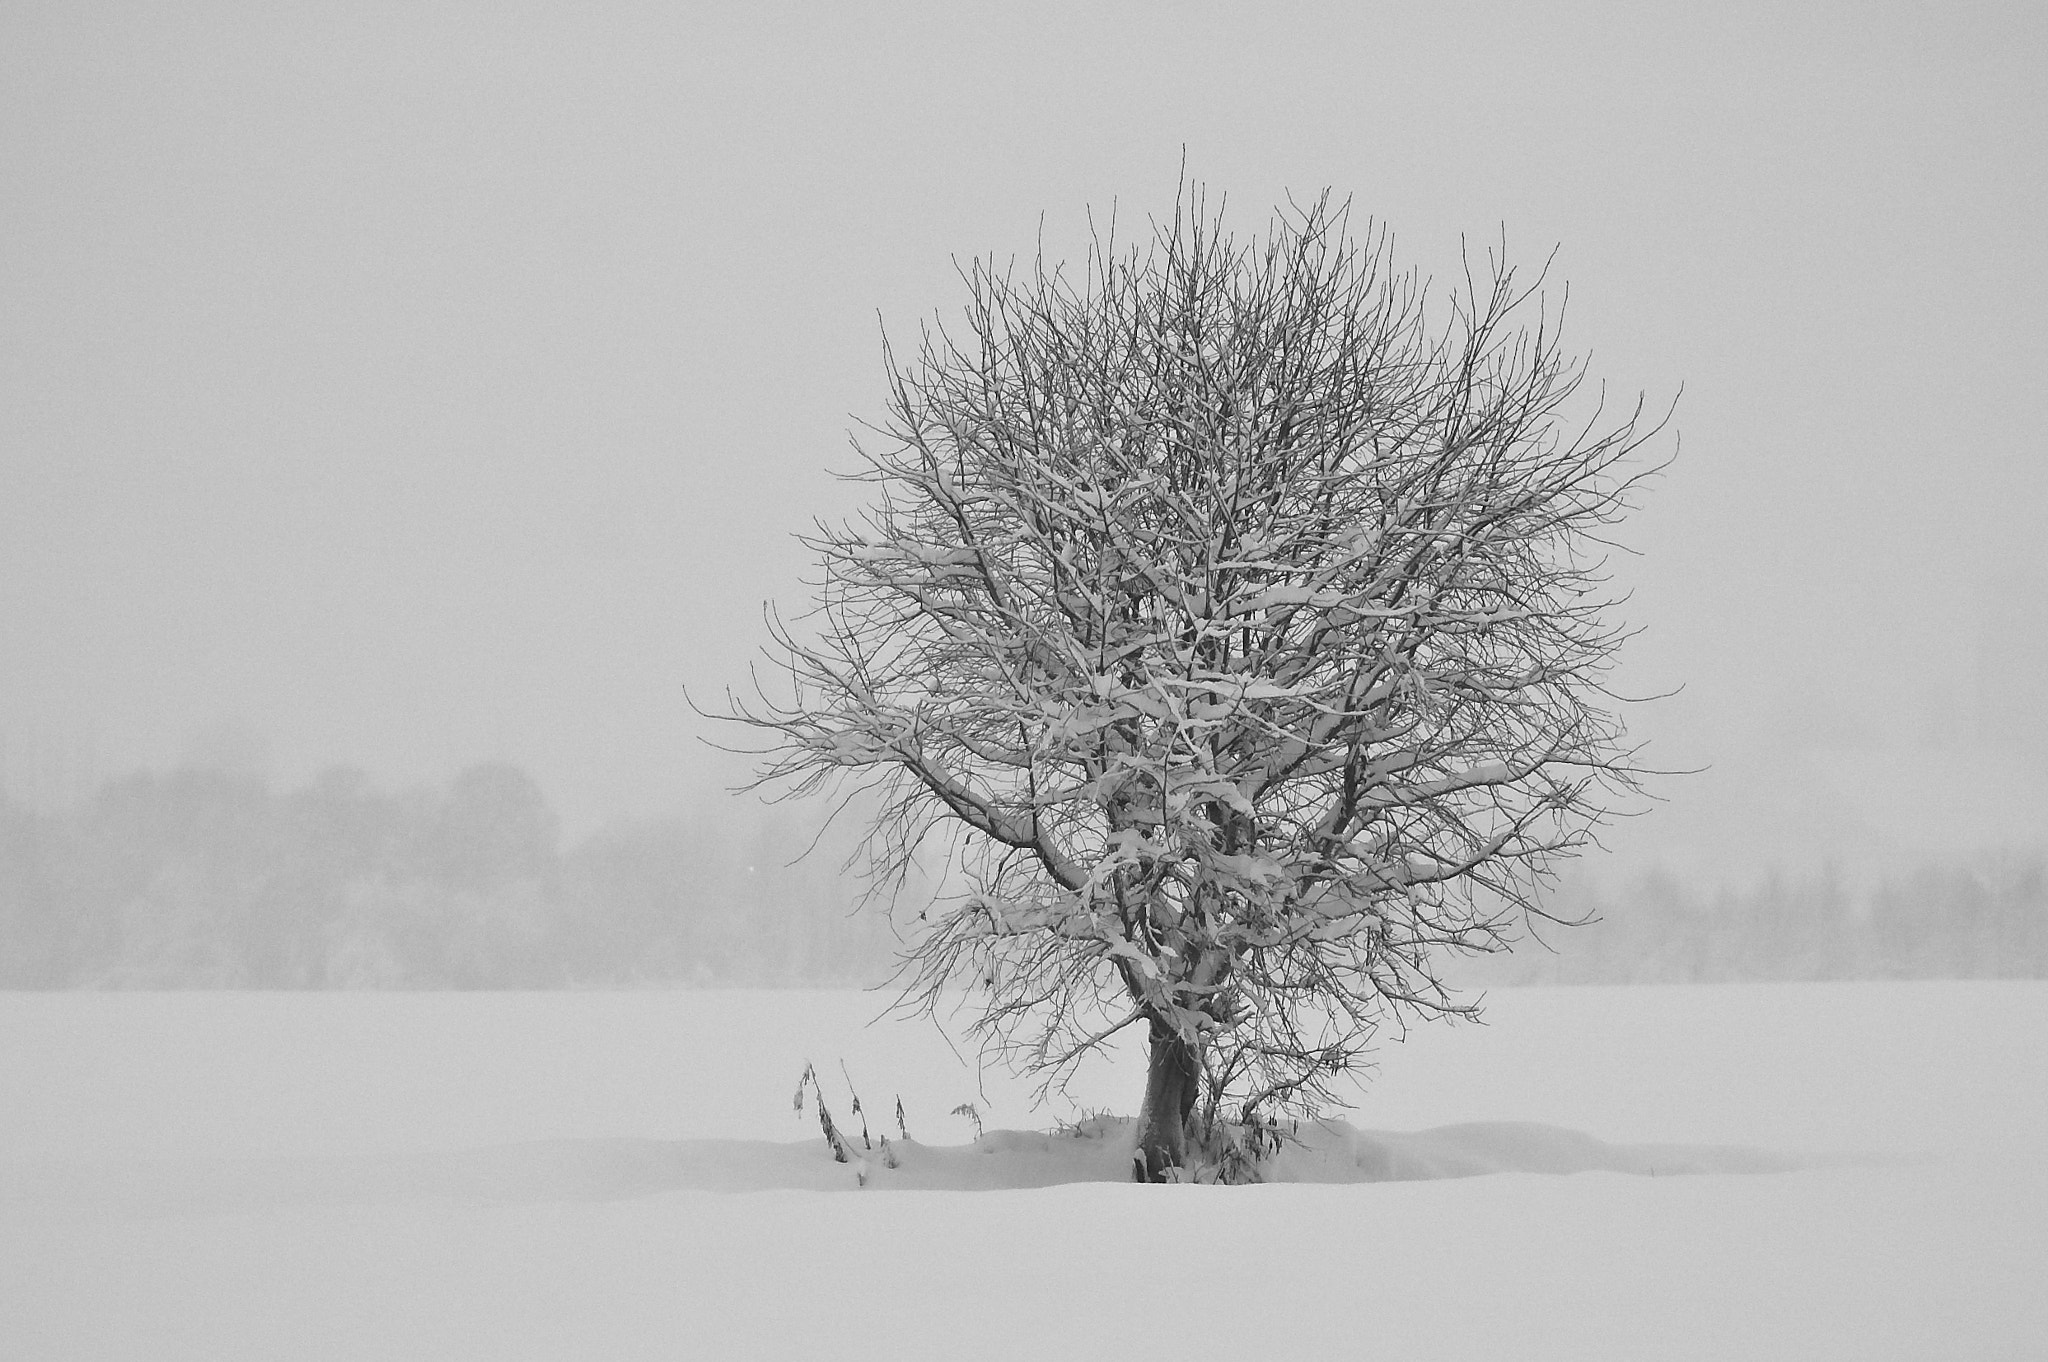 Photograph Tree in snow by Kolbein Svensson on 500px